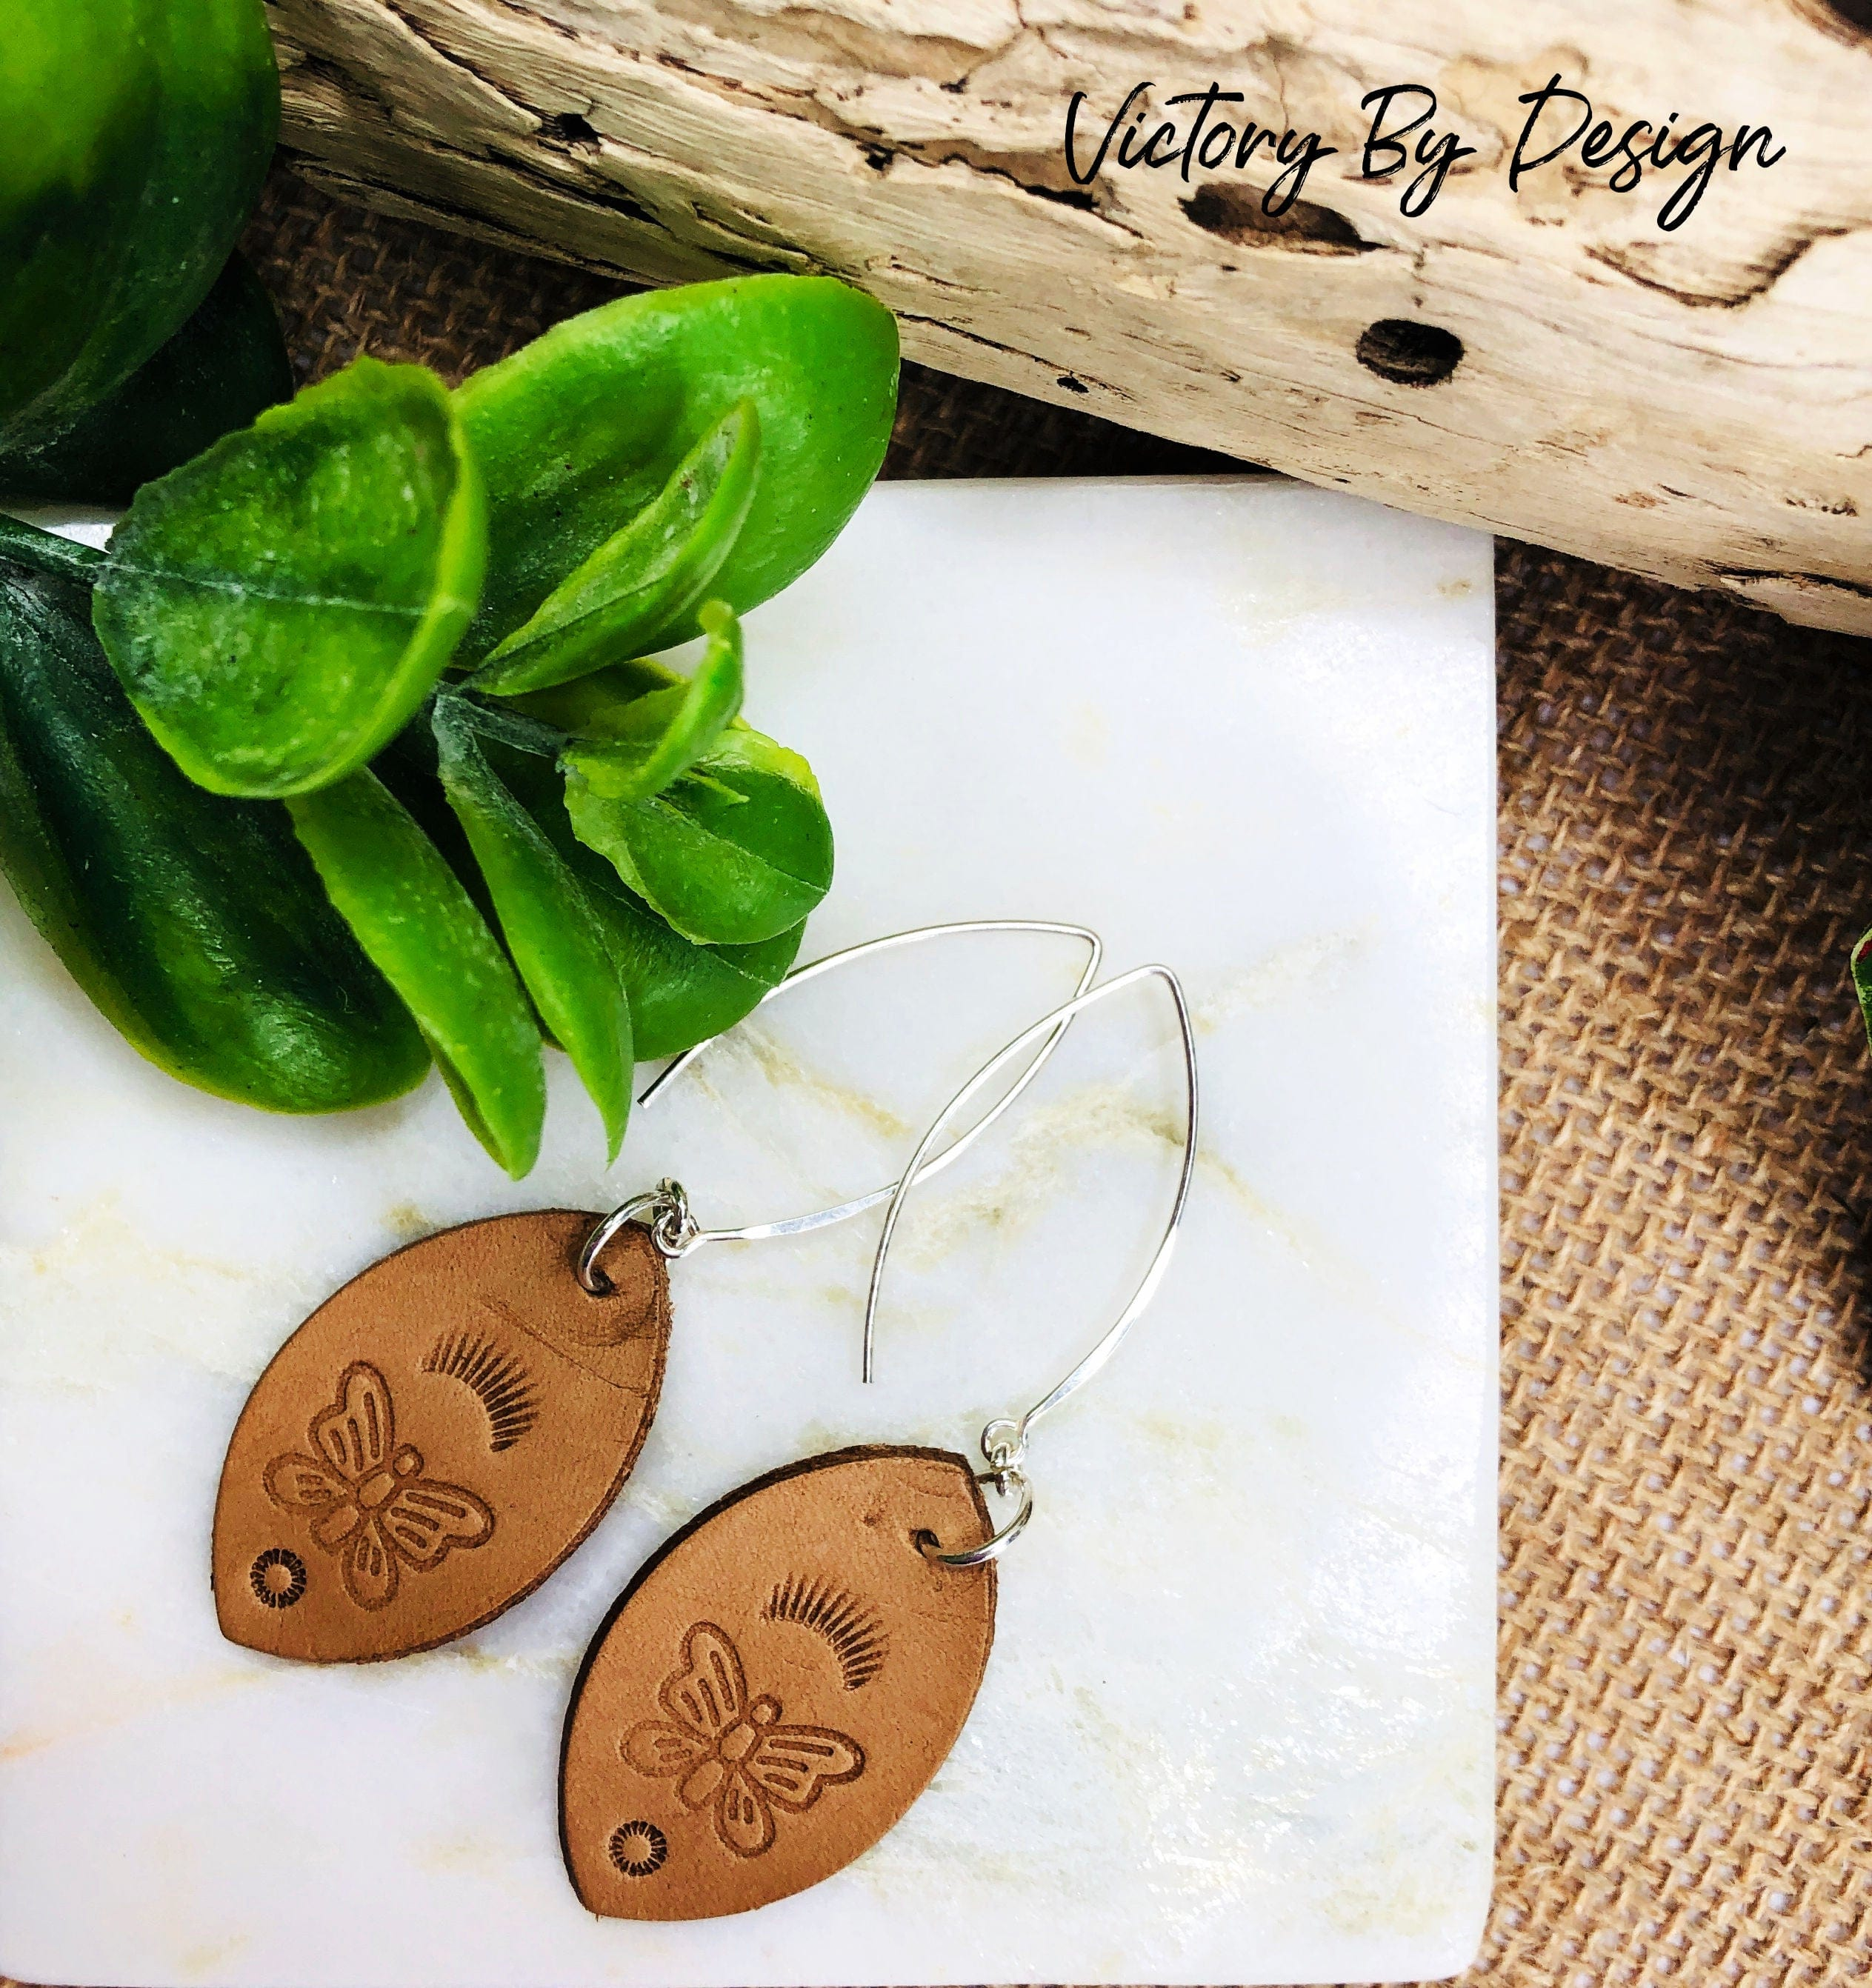 Lge Leaf Leather Earrings with Butterfly Design